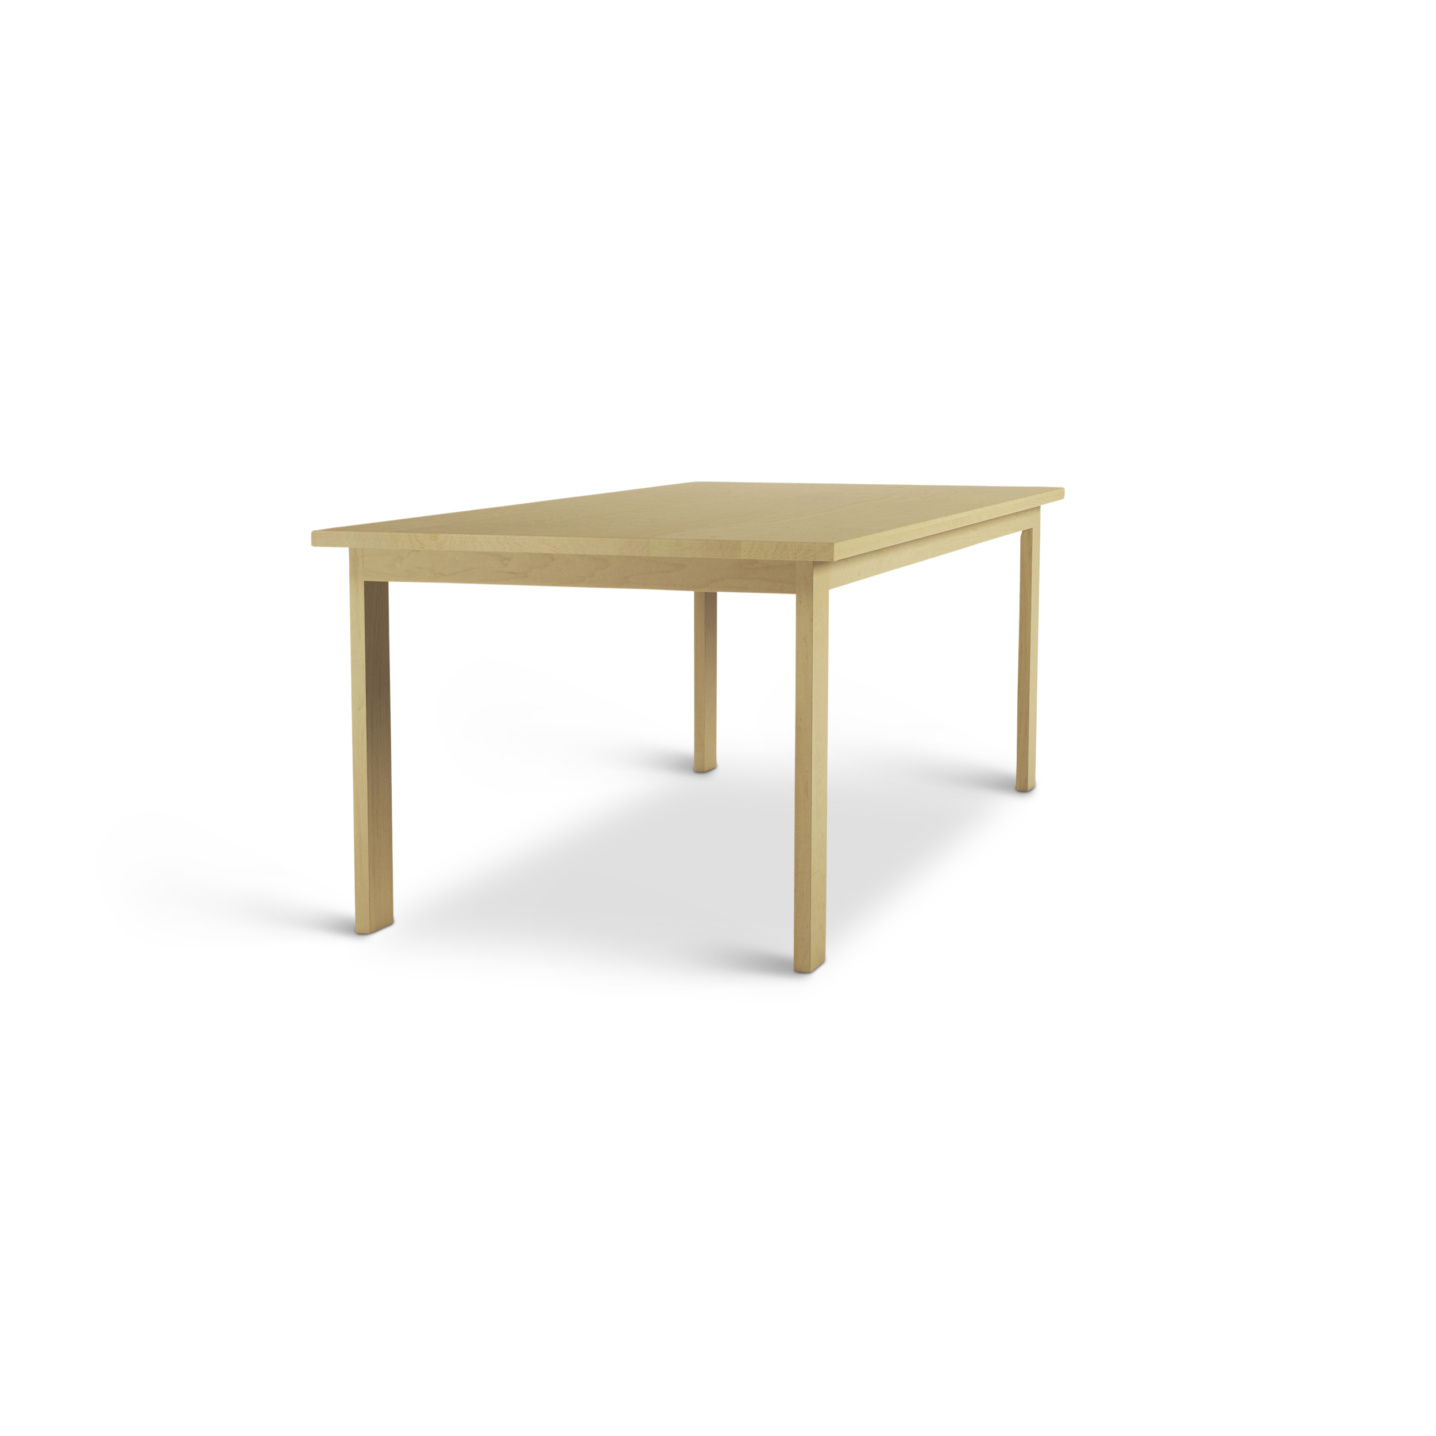 7 foot Simple Solid Maple Table